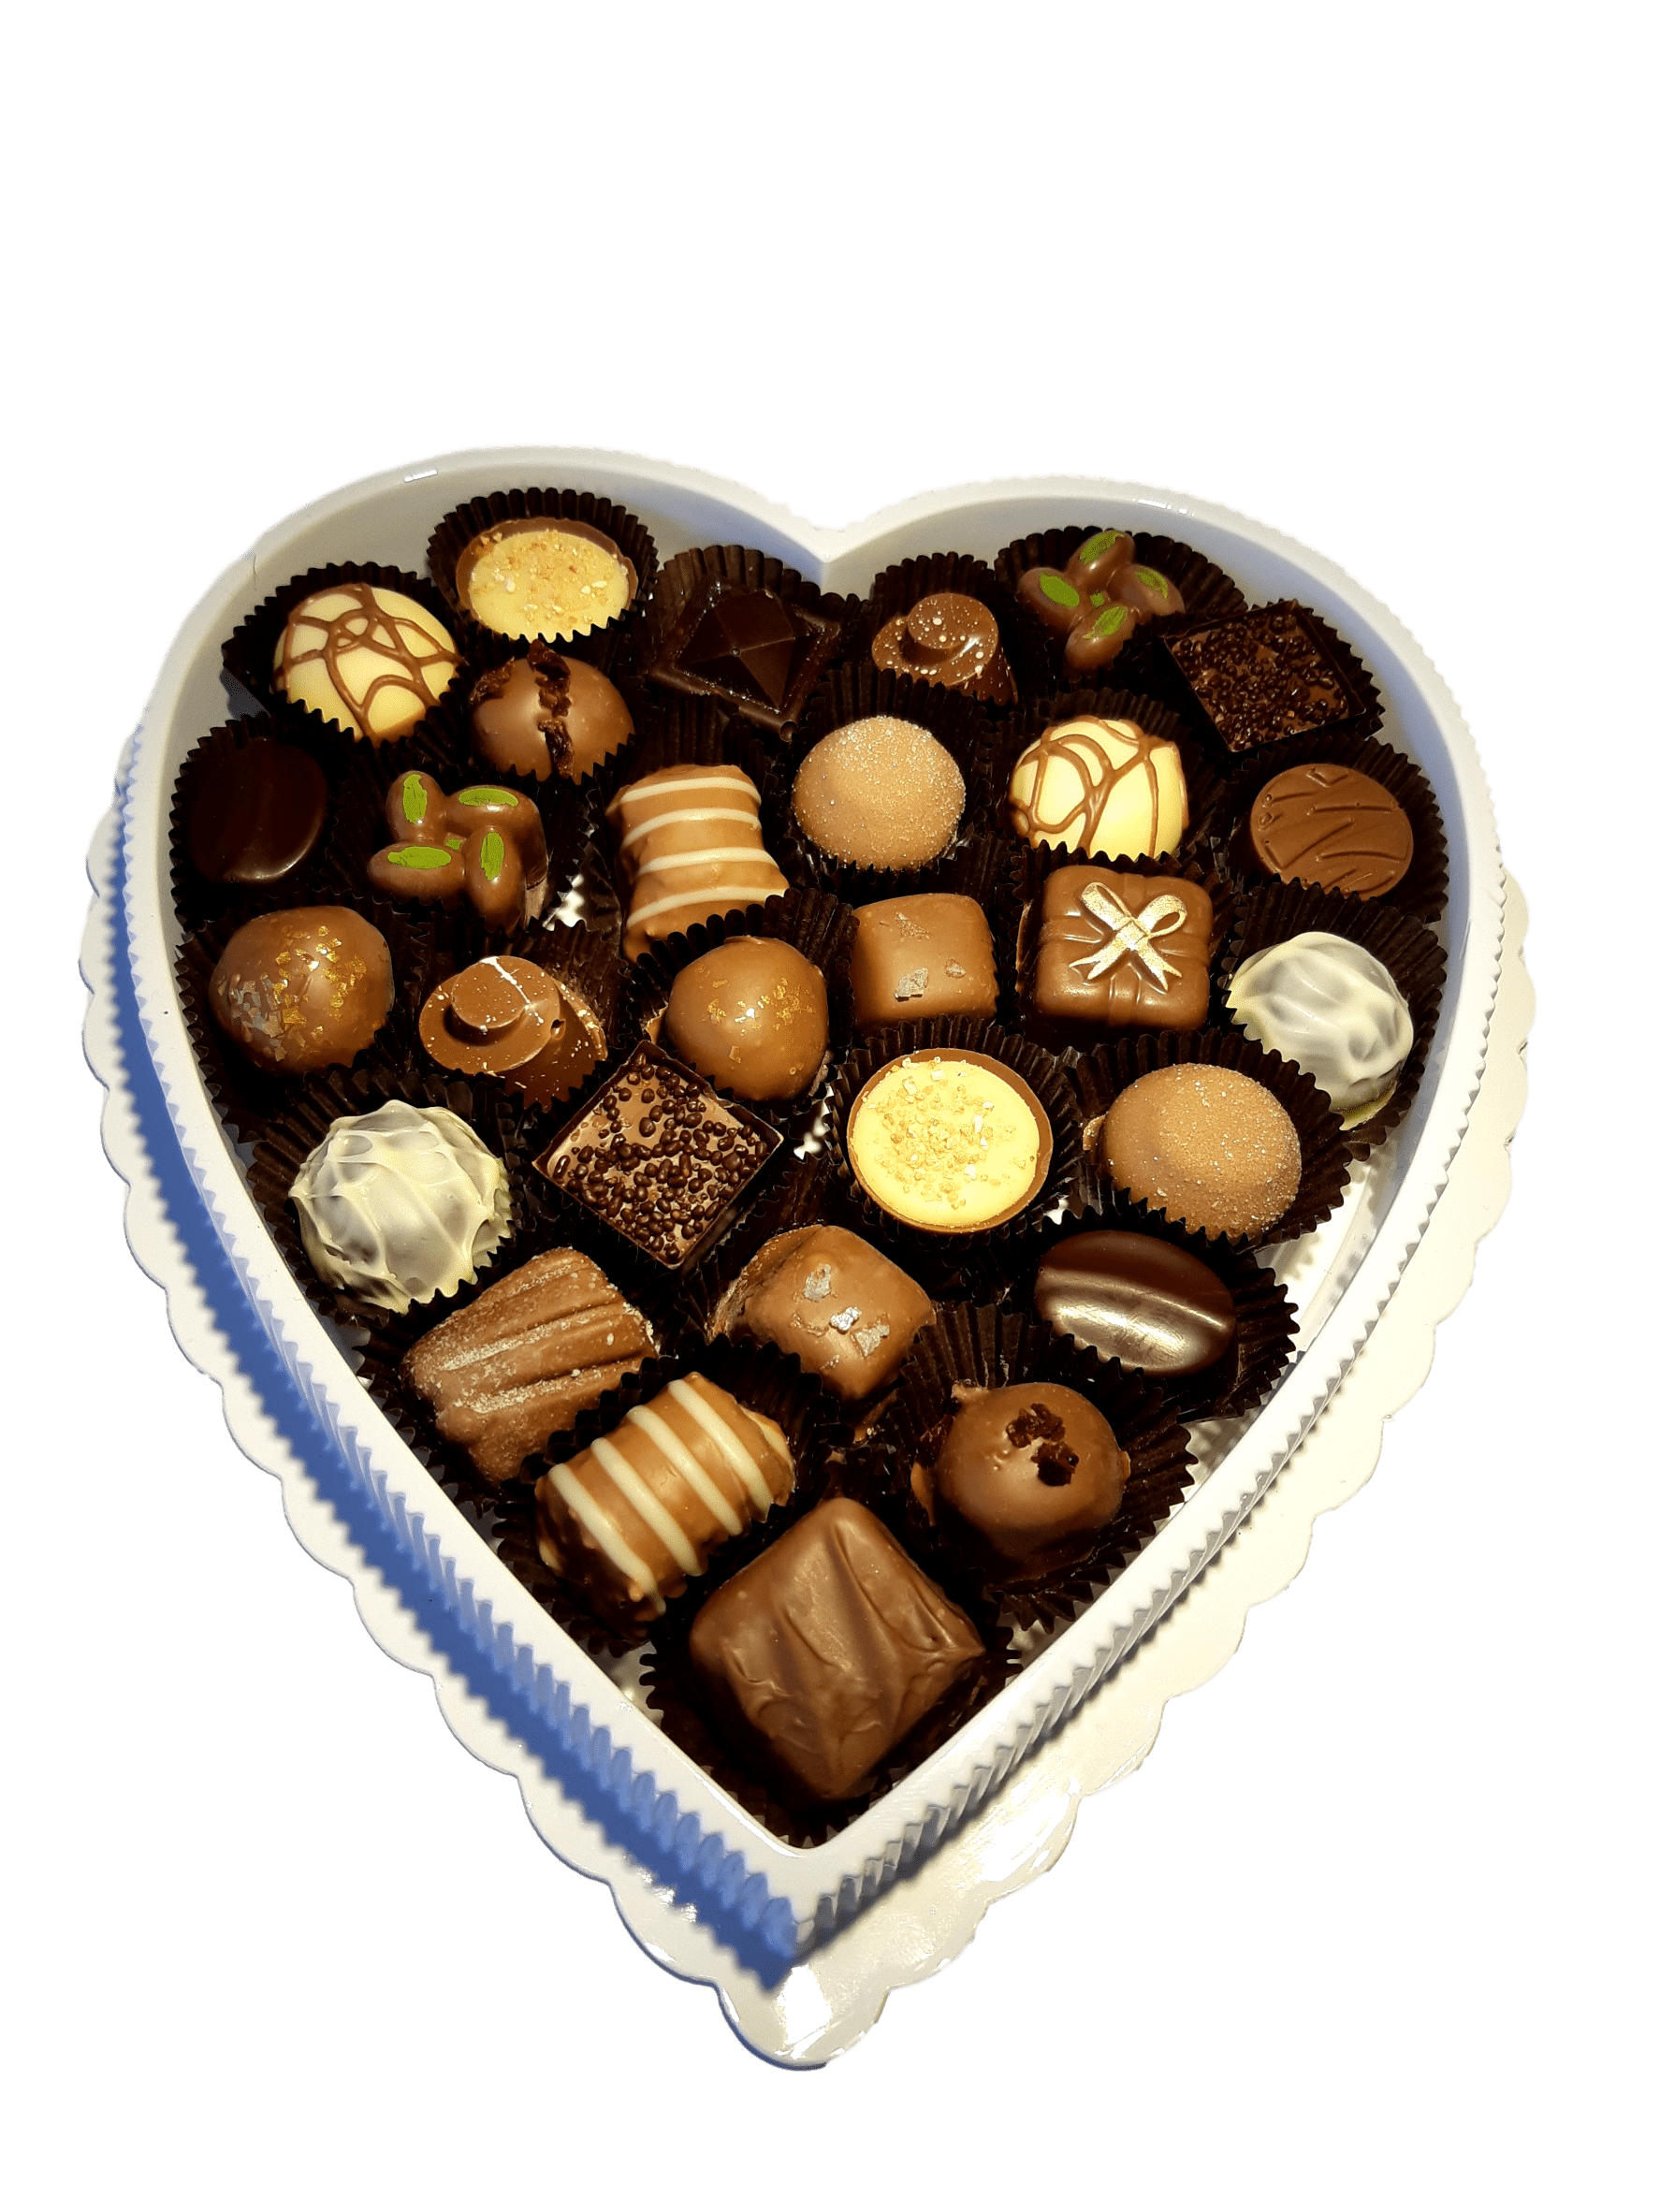 Picture of heart shaped box with assorted truffles made in store.